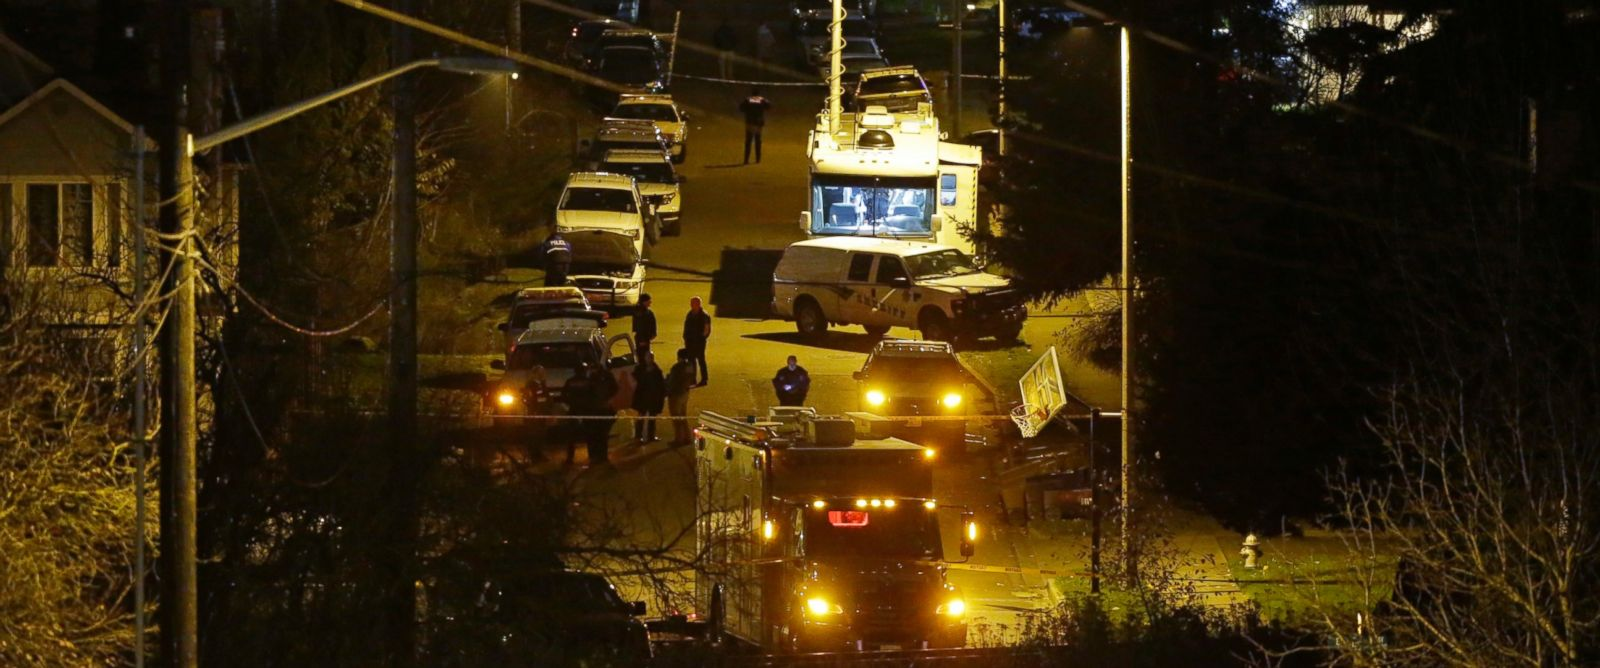 PHOTO: Law enforcement vehicles line East 52nd Street in Tacoma, Washington, Dec. 1, 2016, near the home where a Tacoma Police Officer was fatally shot.